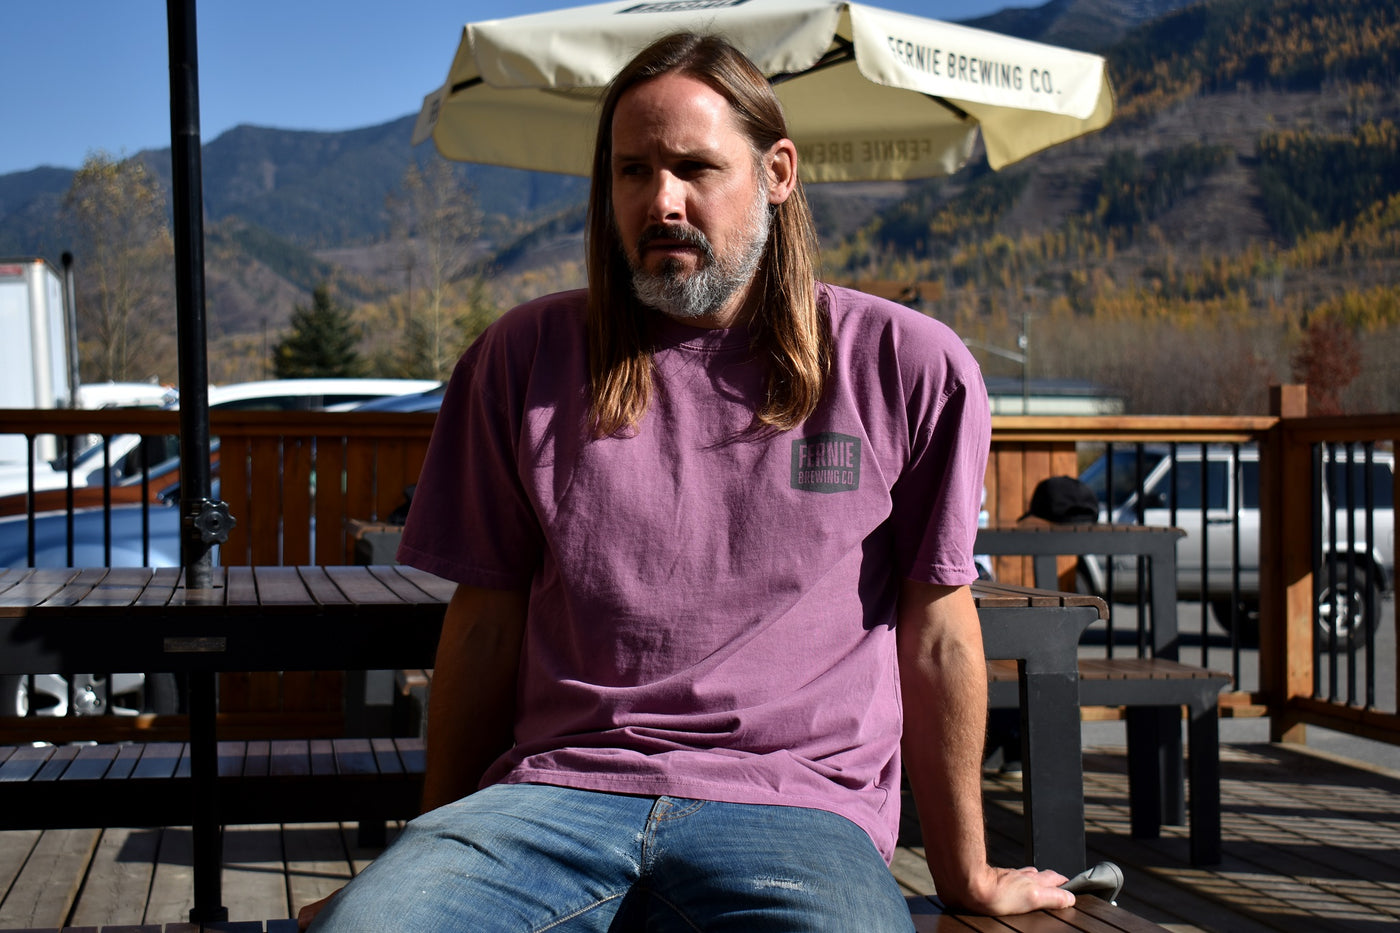 Man sat on patio wearing grey t-shirt and black hat reaching into his bag.